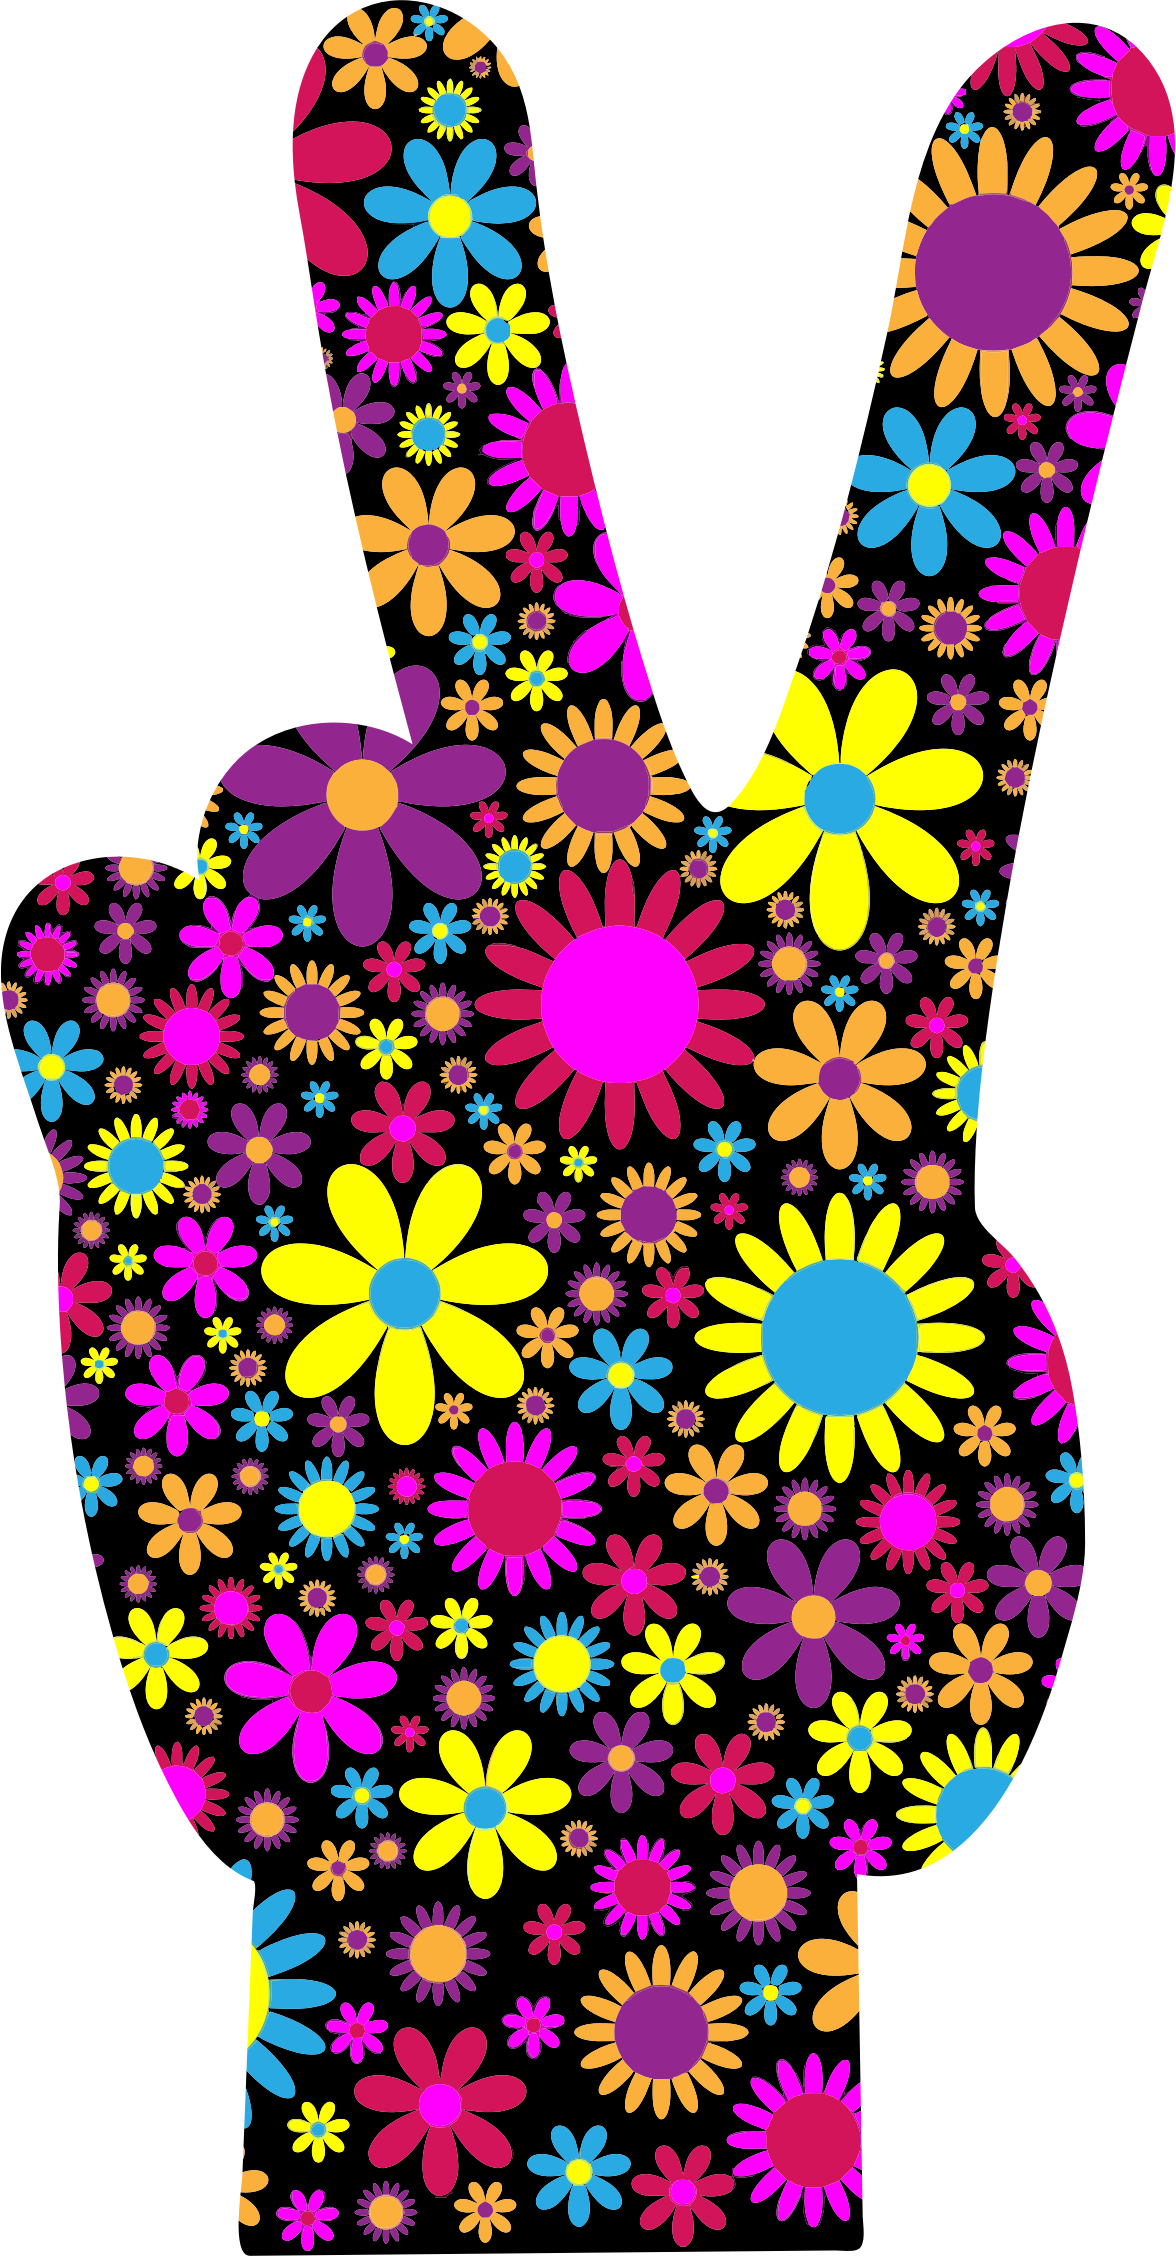 Peace clipart hand signal. Floral sign big image